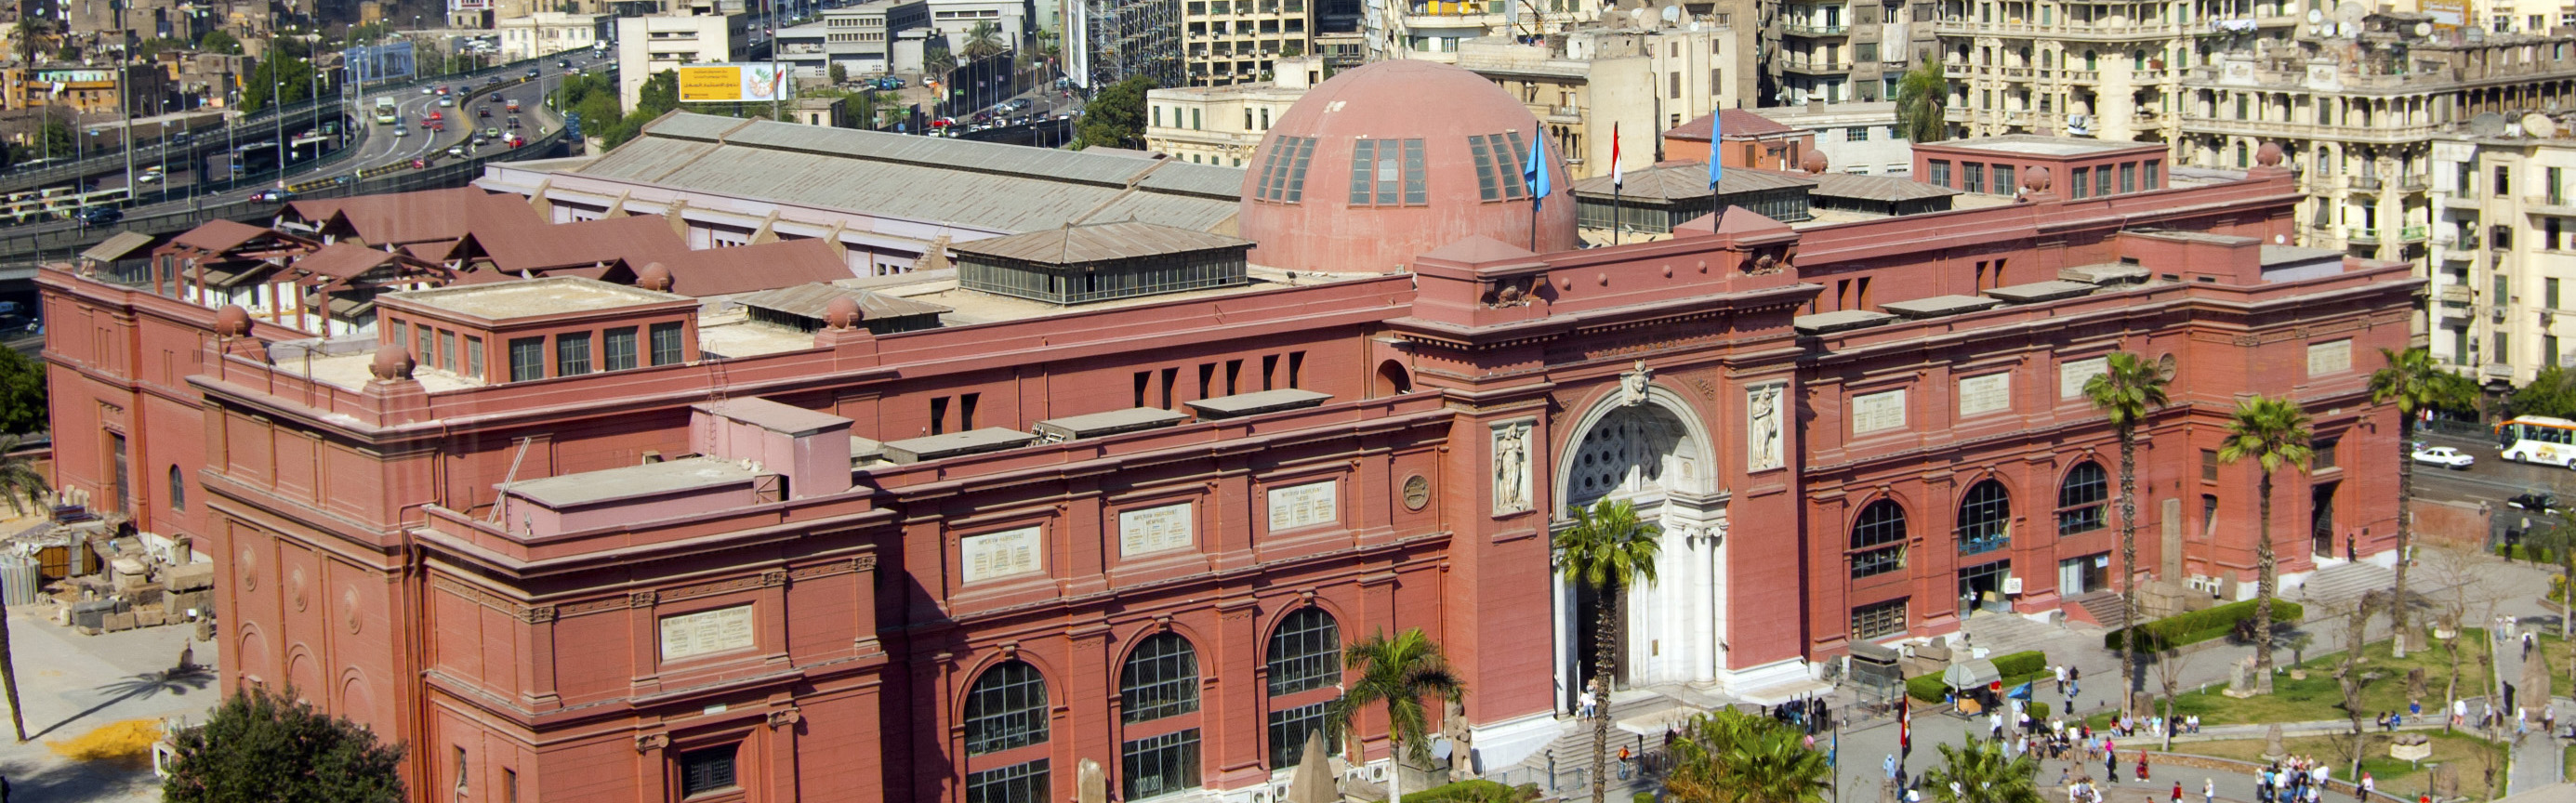 The Museum of Egyptian Antiquities - Egyptian Museum or Museum of Cairo, in Cairo, Egypt (1)